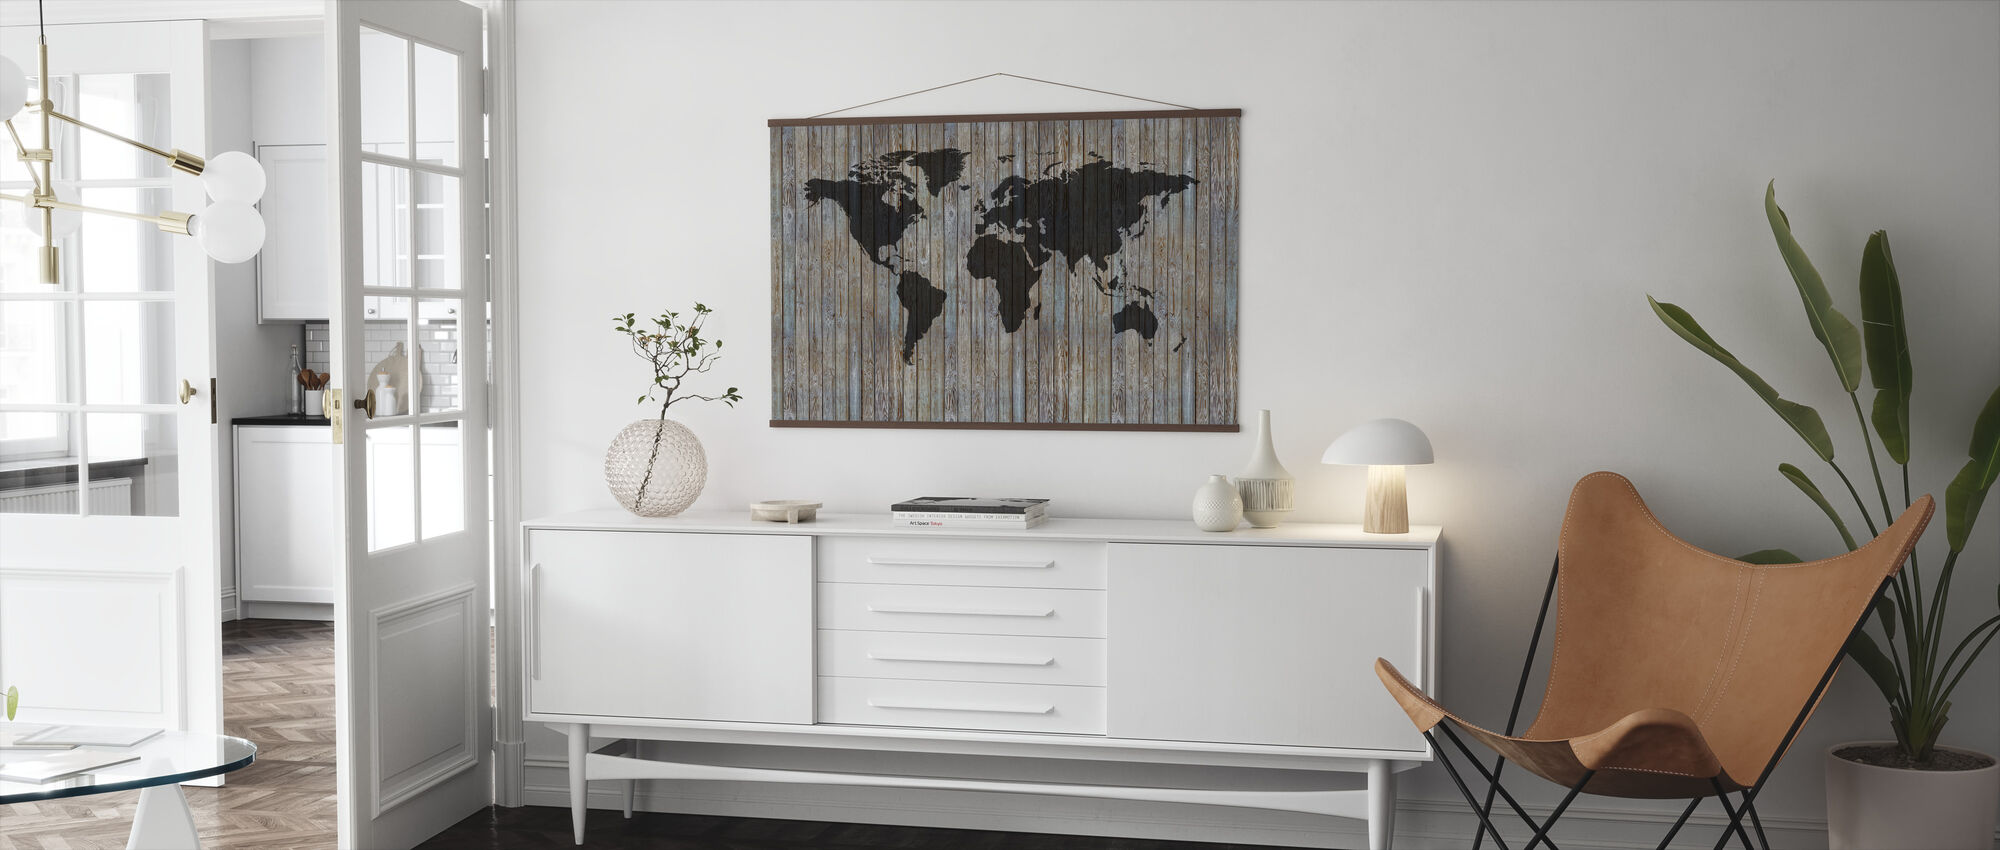 World Map Wooden Plank - Old Silver - Poster - Living Room